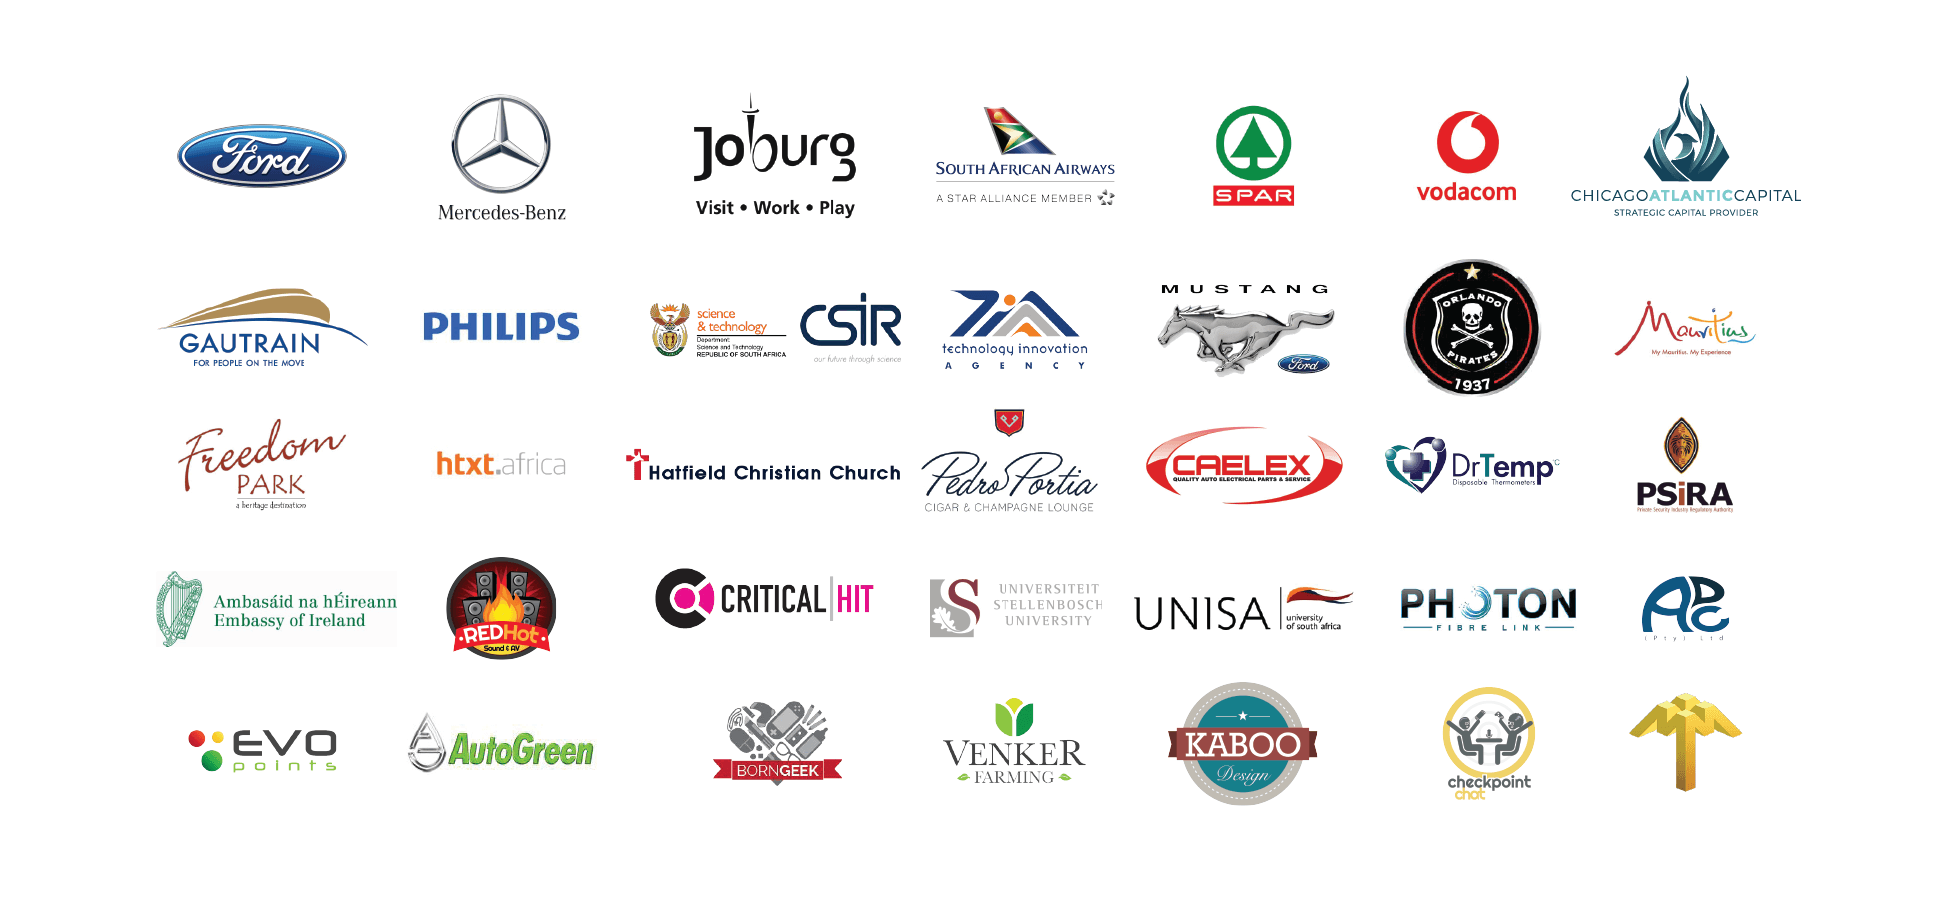 Client List, Portfolio, Ford, Mercedes-Benz, SAA, South African Airways, SPAR, Vodacom, Chicago Atlantic Capital, Gautrain, PHILIPS, CSIR, TIA, Mustang, Orlando Pirates, Mauritius, PSIRA, Freedom Park